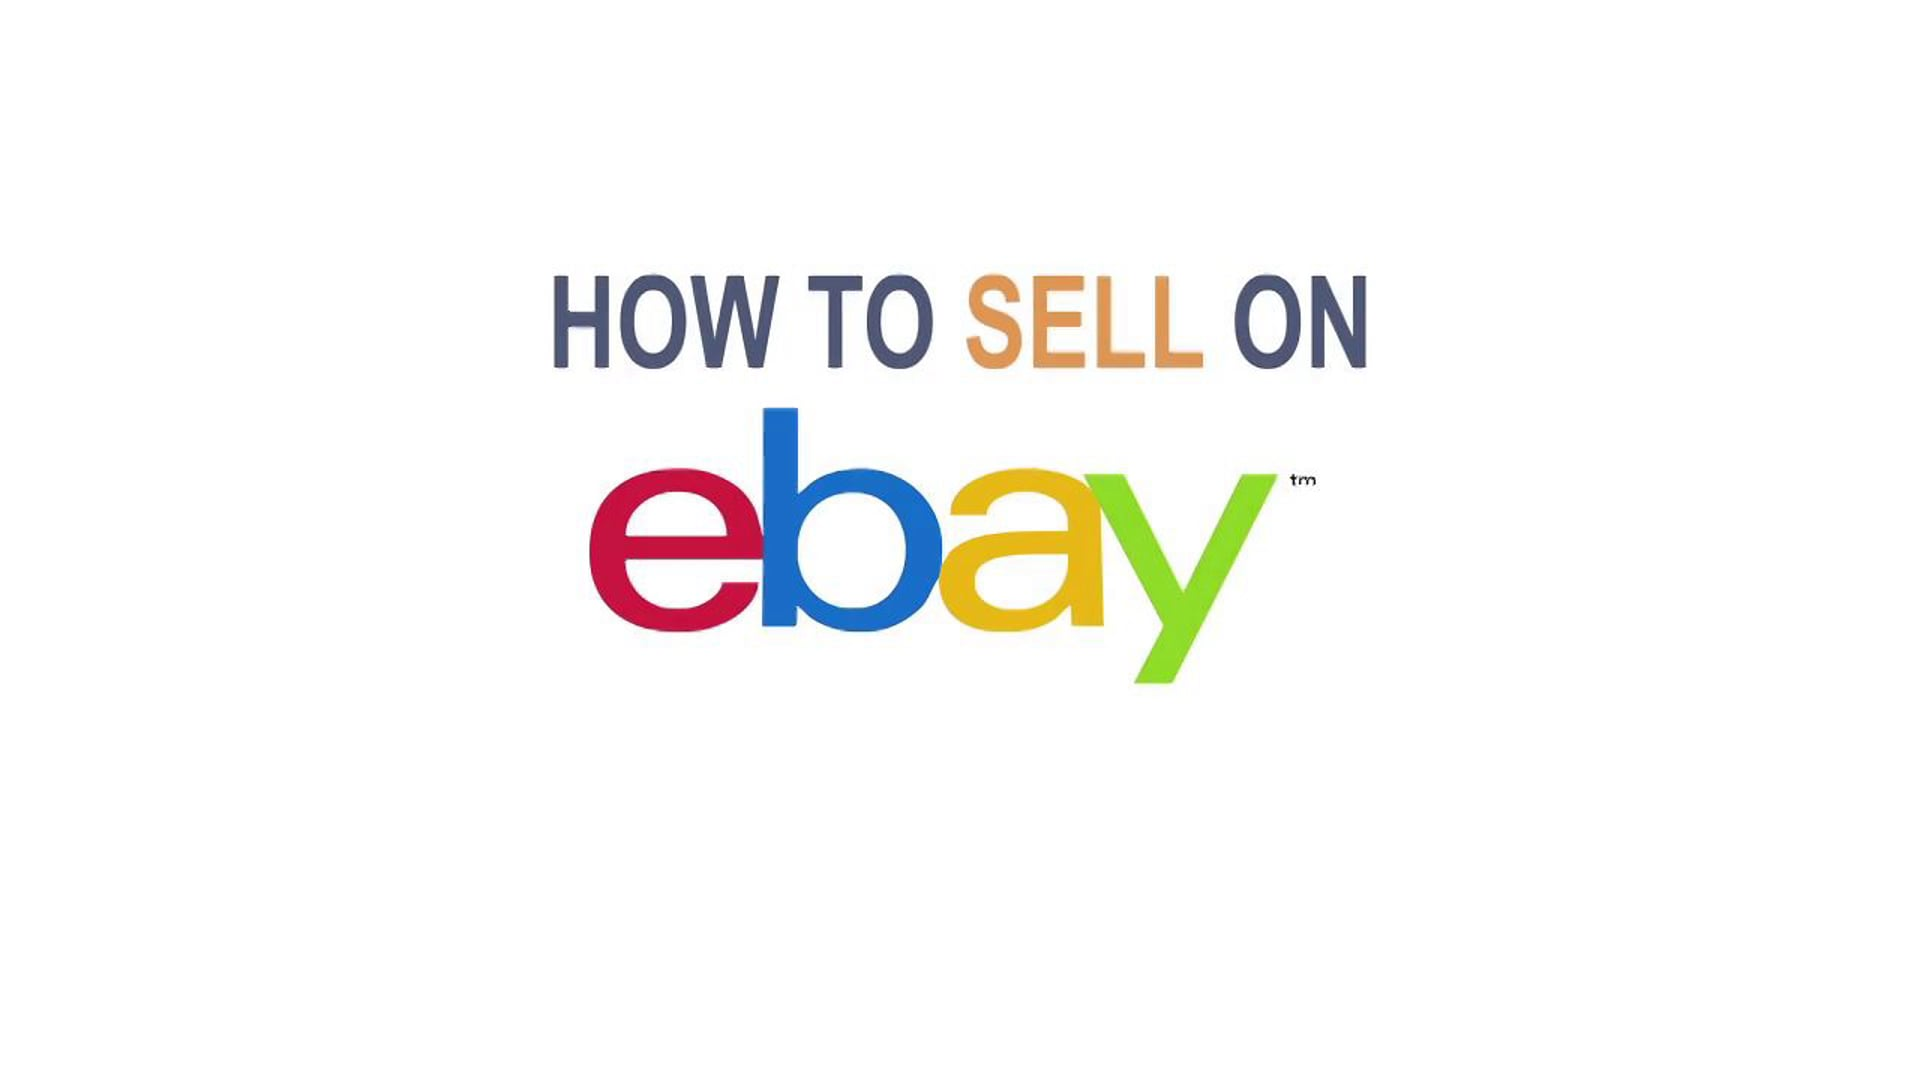 Jeff - How to sell on eBay! promo